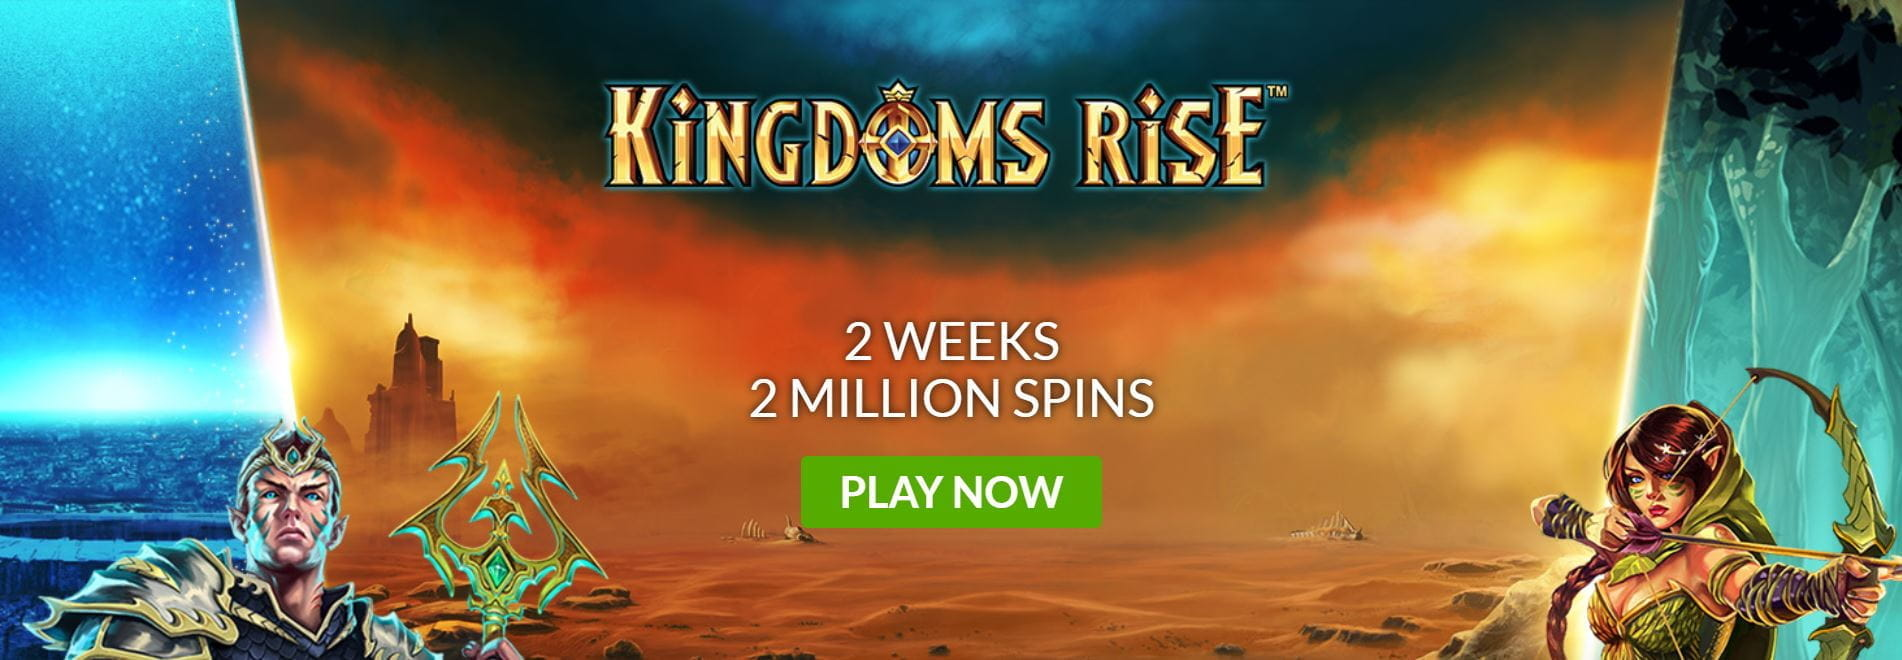 The Kingdoms Rise prize draw event from Mansion Casino.